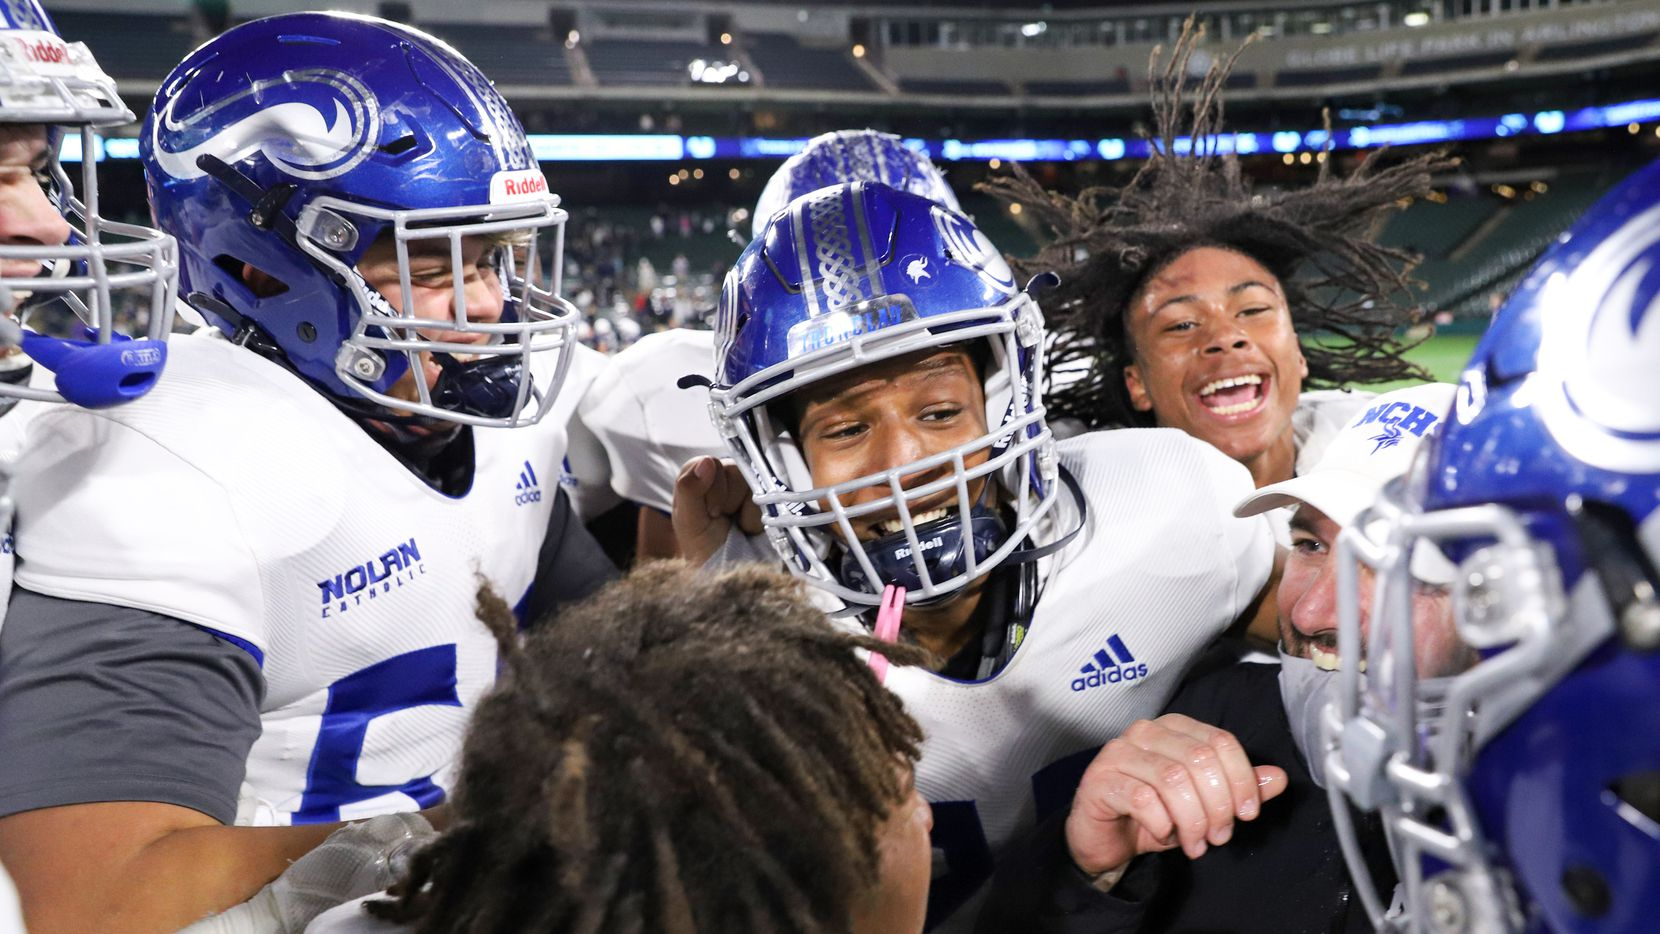 Fort Worth Nolan head coach David Beaudin celebrates with his team after a win over Fort Worth All Saints at Globe Life Park in Arlington, Saturday, December 5, 2020. (Elias Valverde II / Special Contributor)